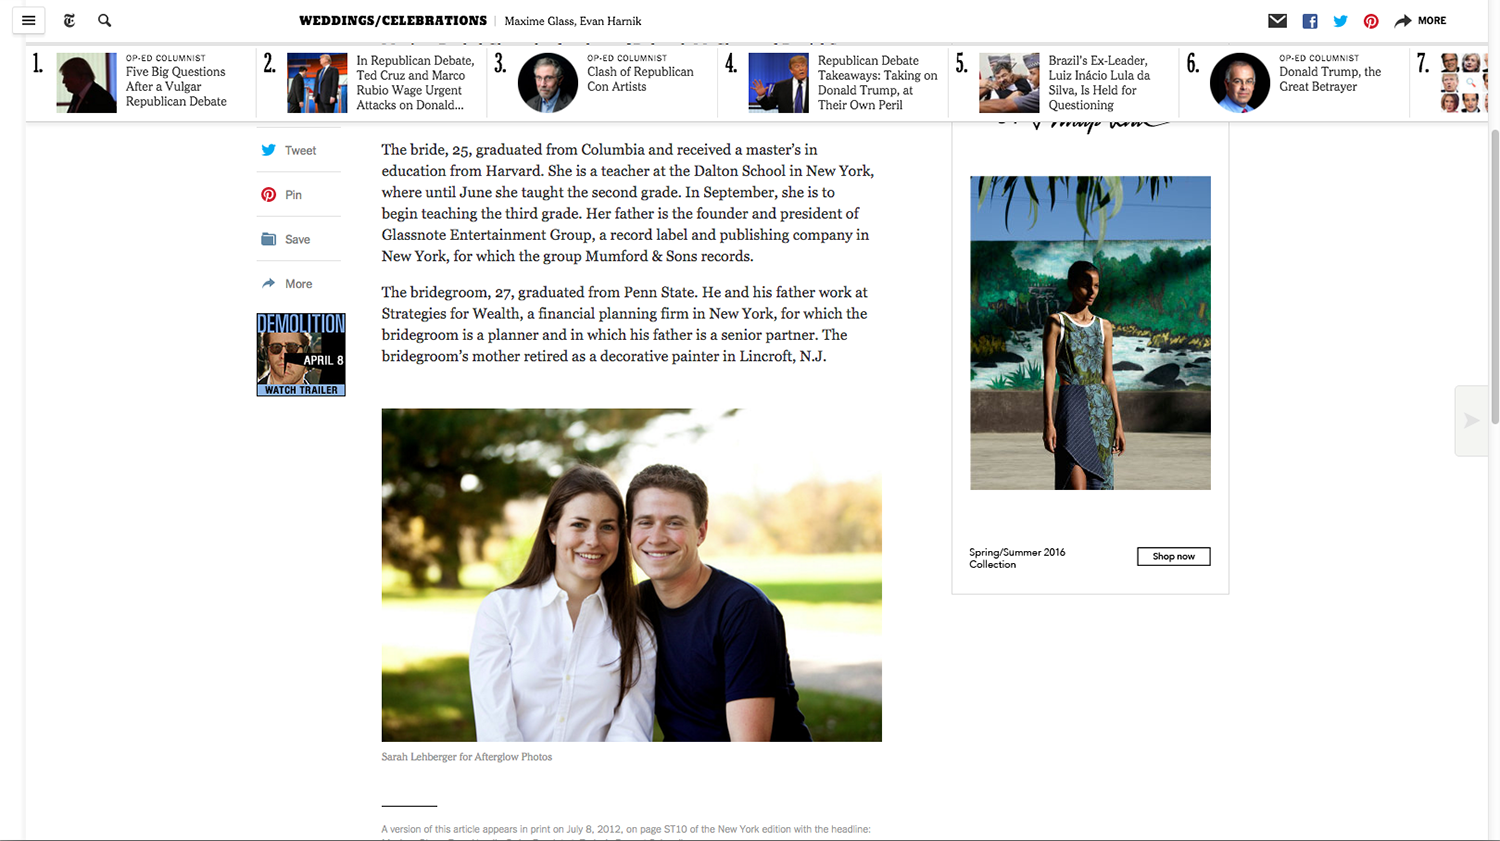 wedding-new-york-times-feature-slehberger.png